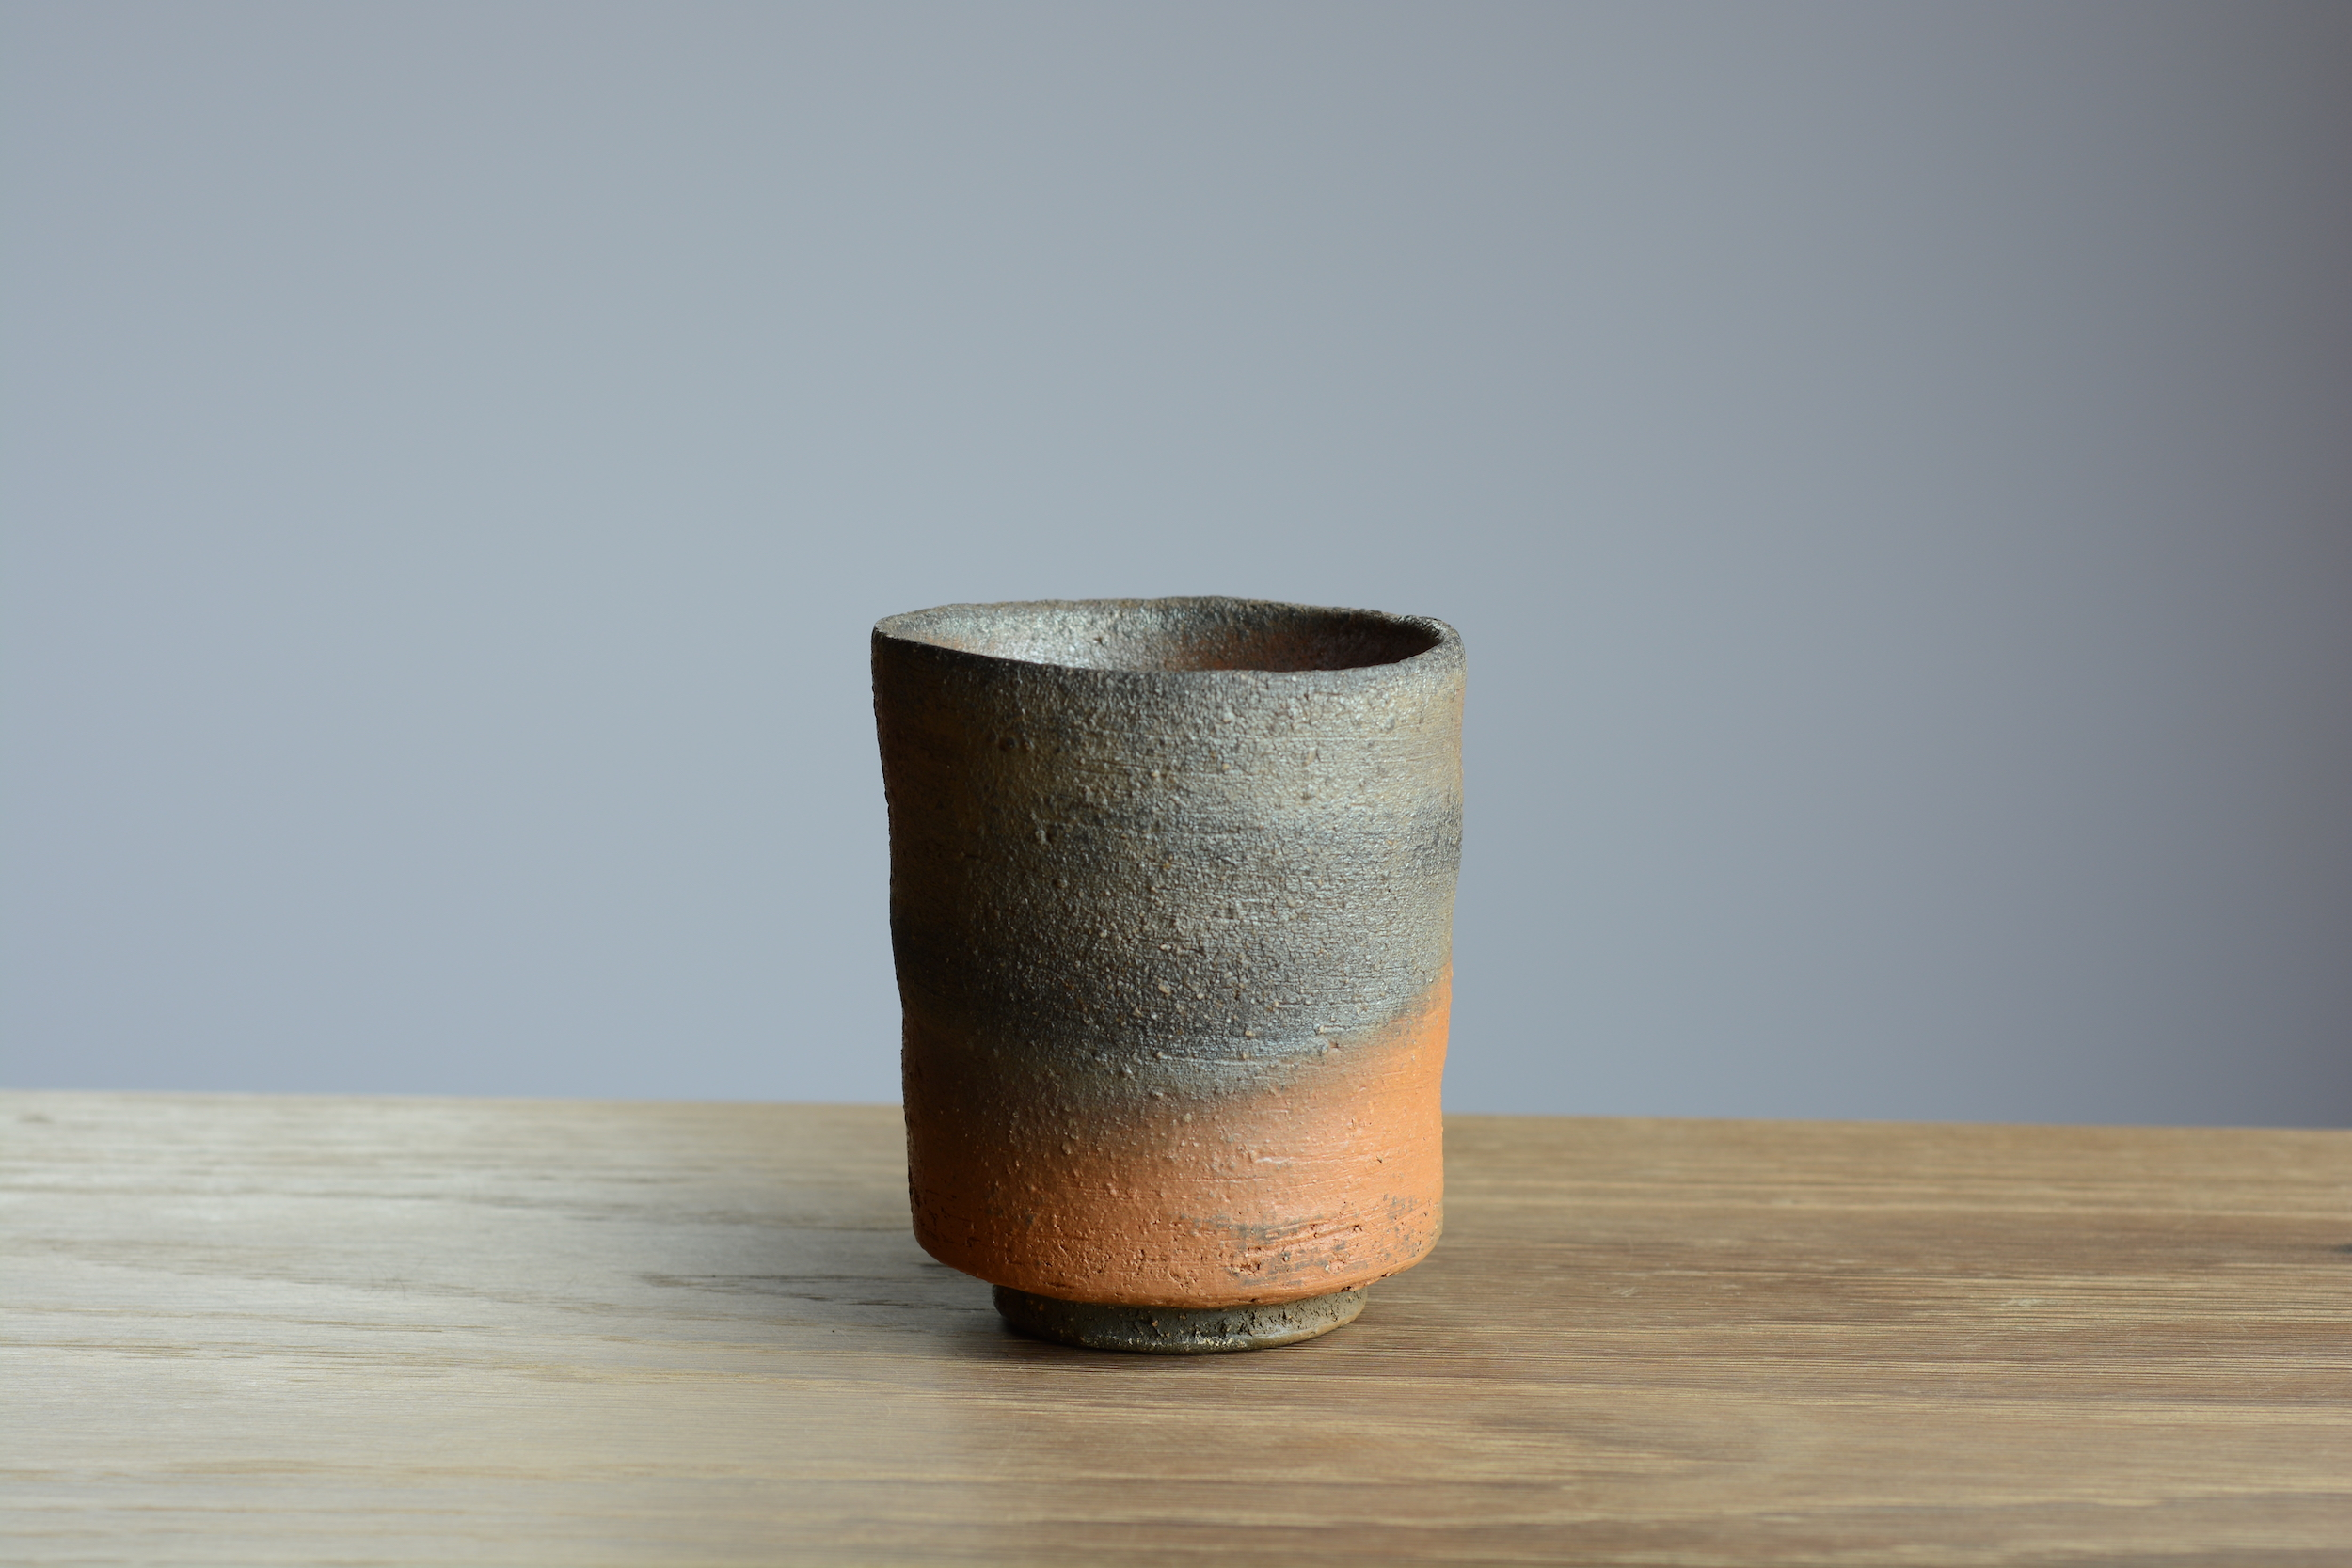 wood fired yunomi native clay. davidholden.ie